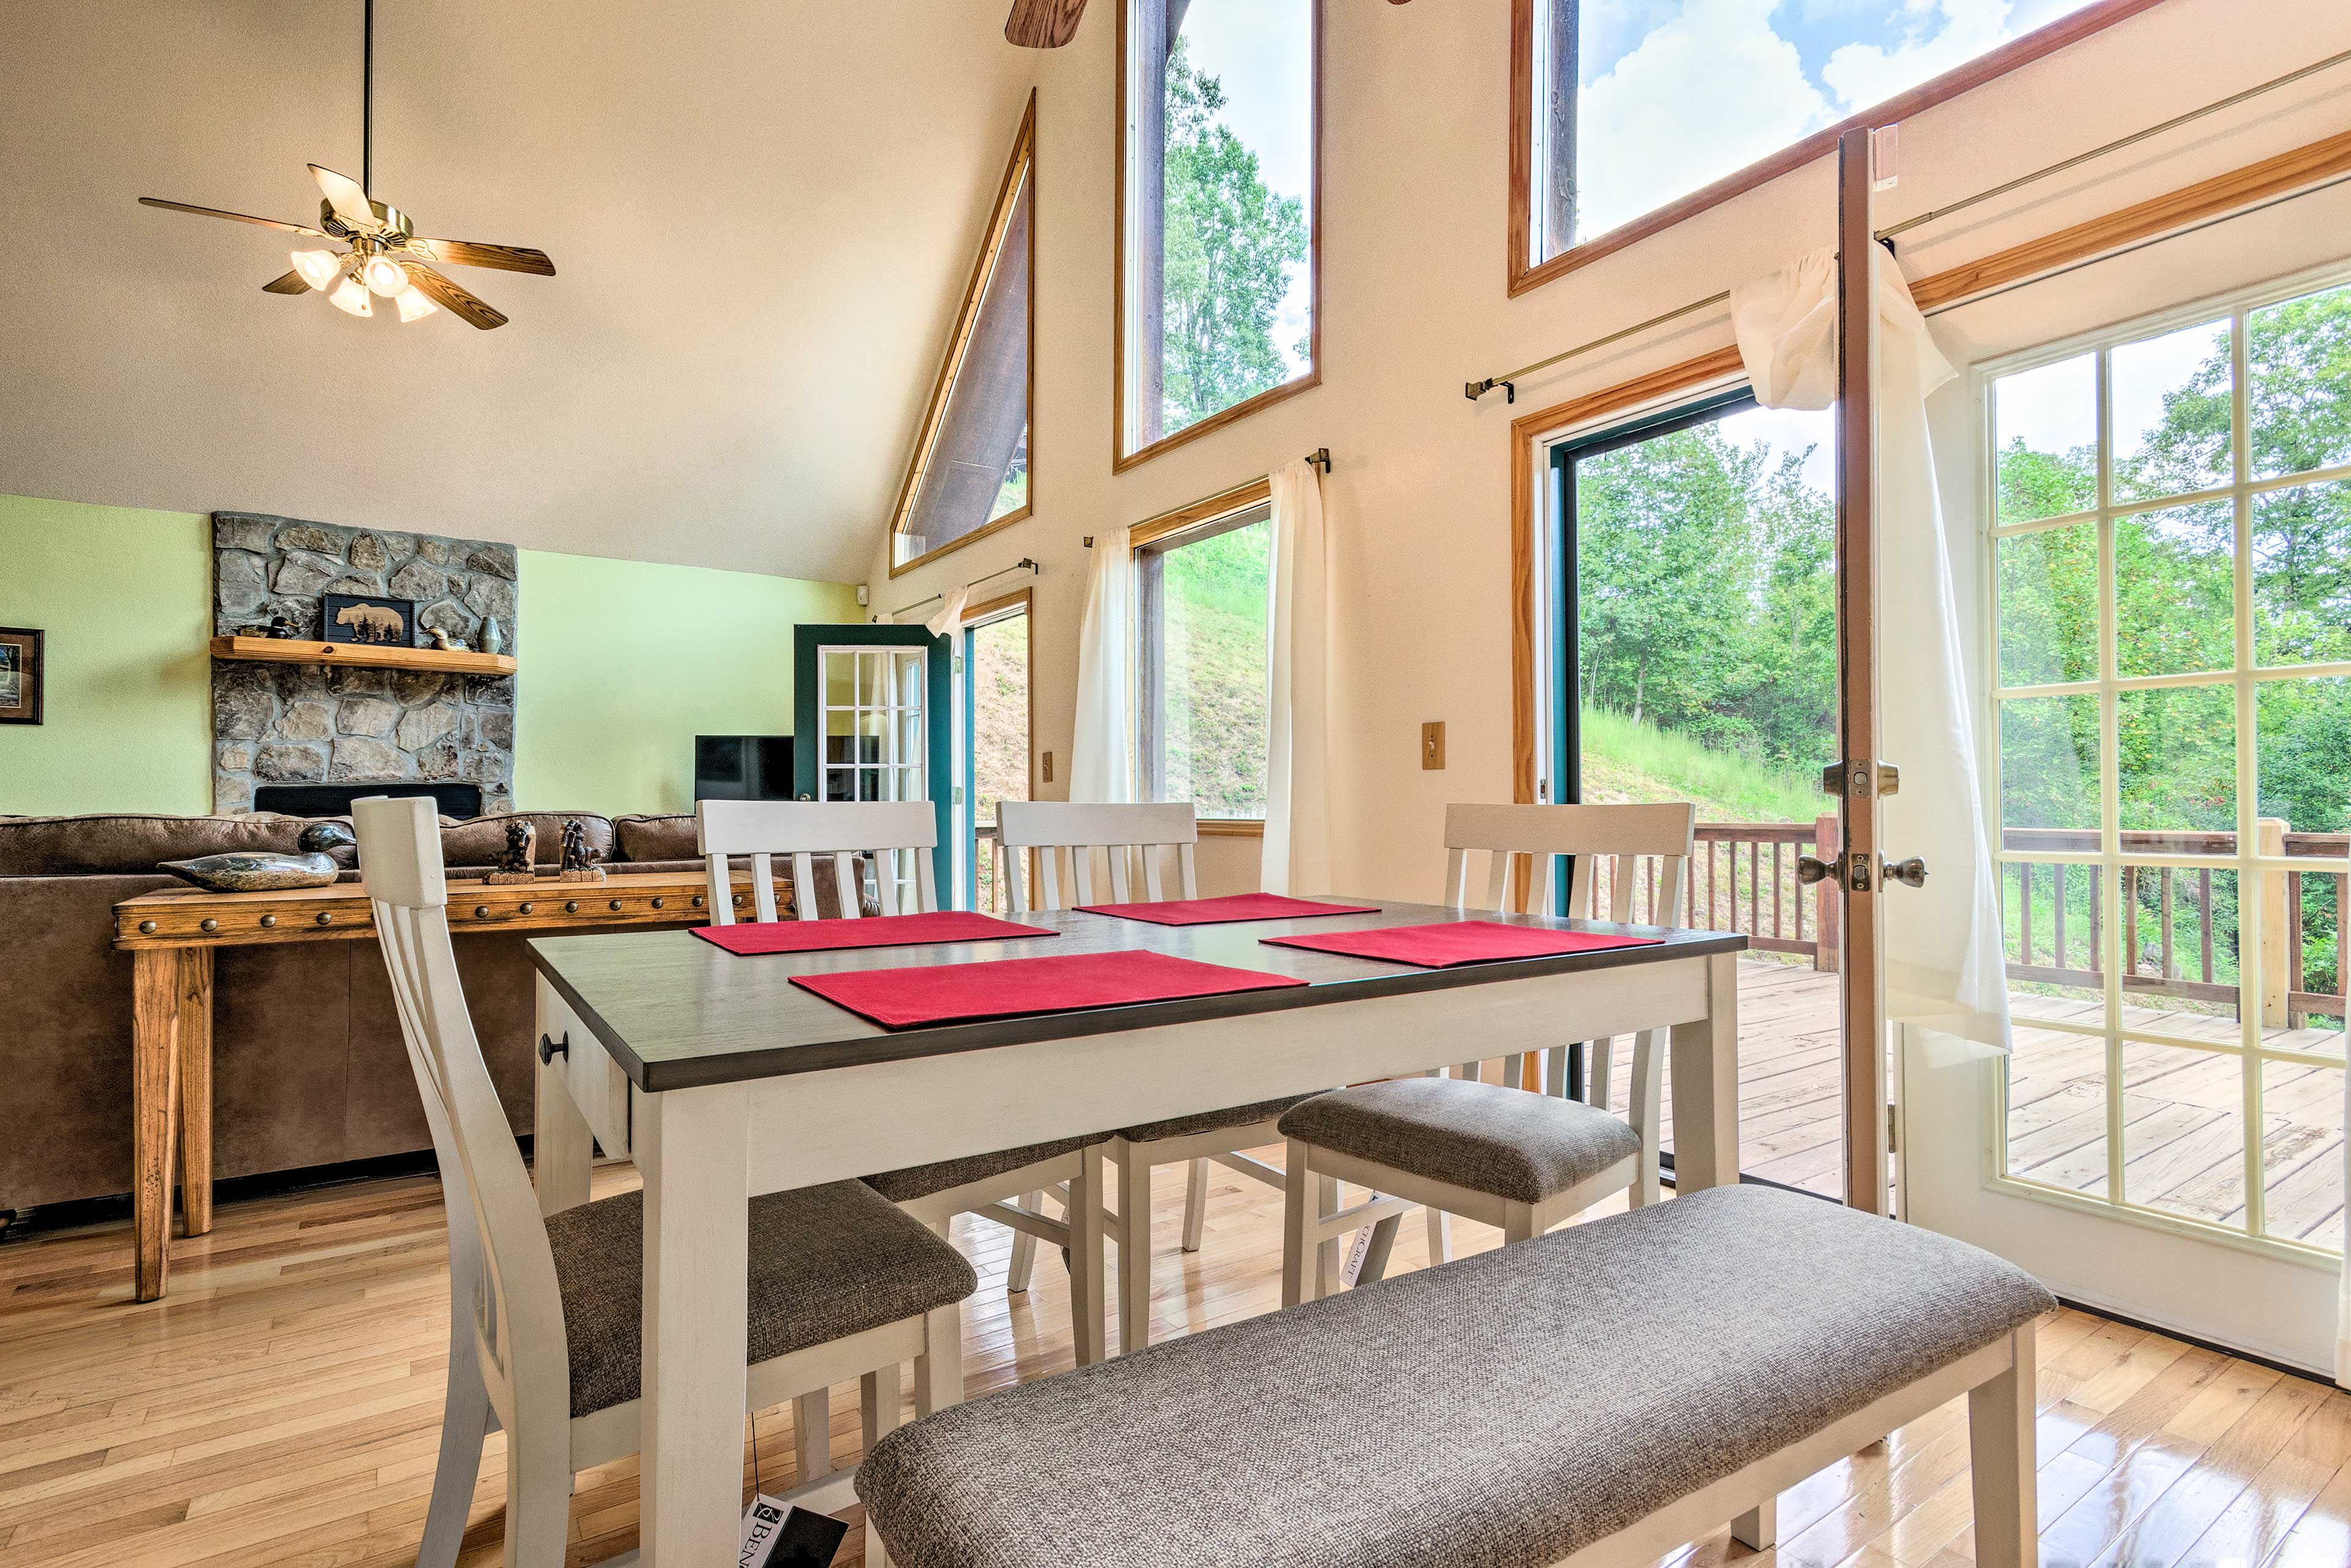 Gather around the 6-person dining table for a delicious home-cooked meal.